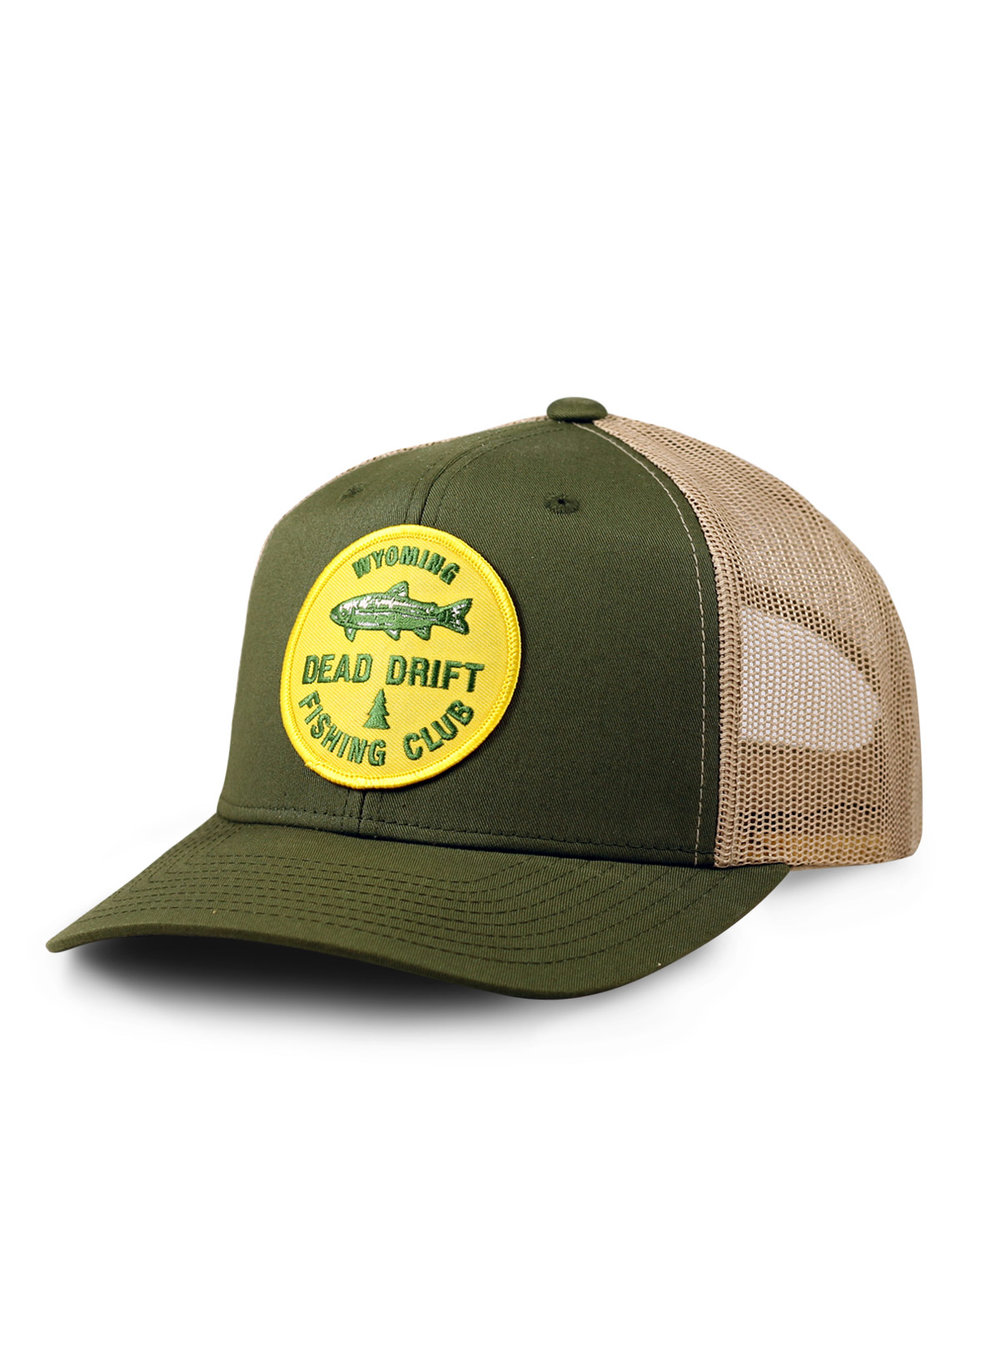 Dead drift fly fishing club trucker dead drift for Fishing trucker hats